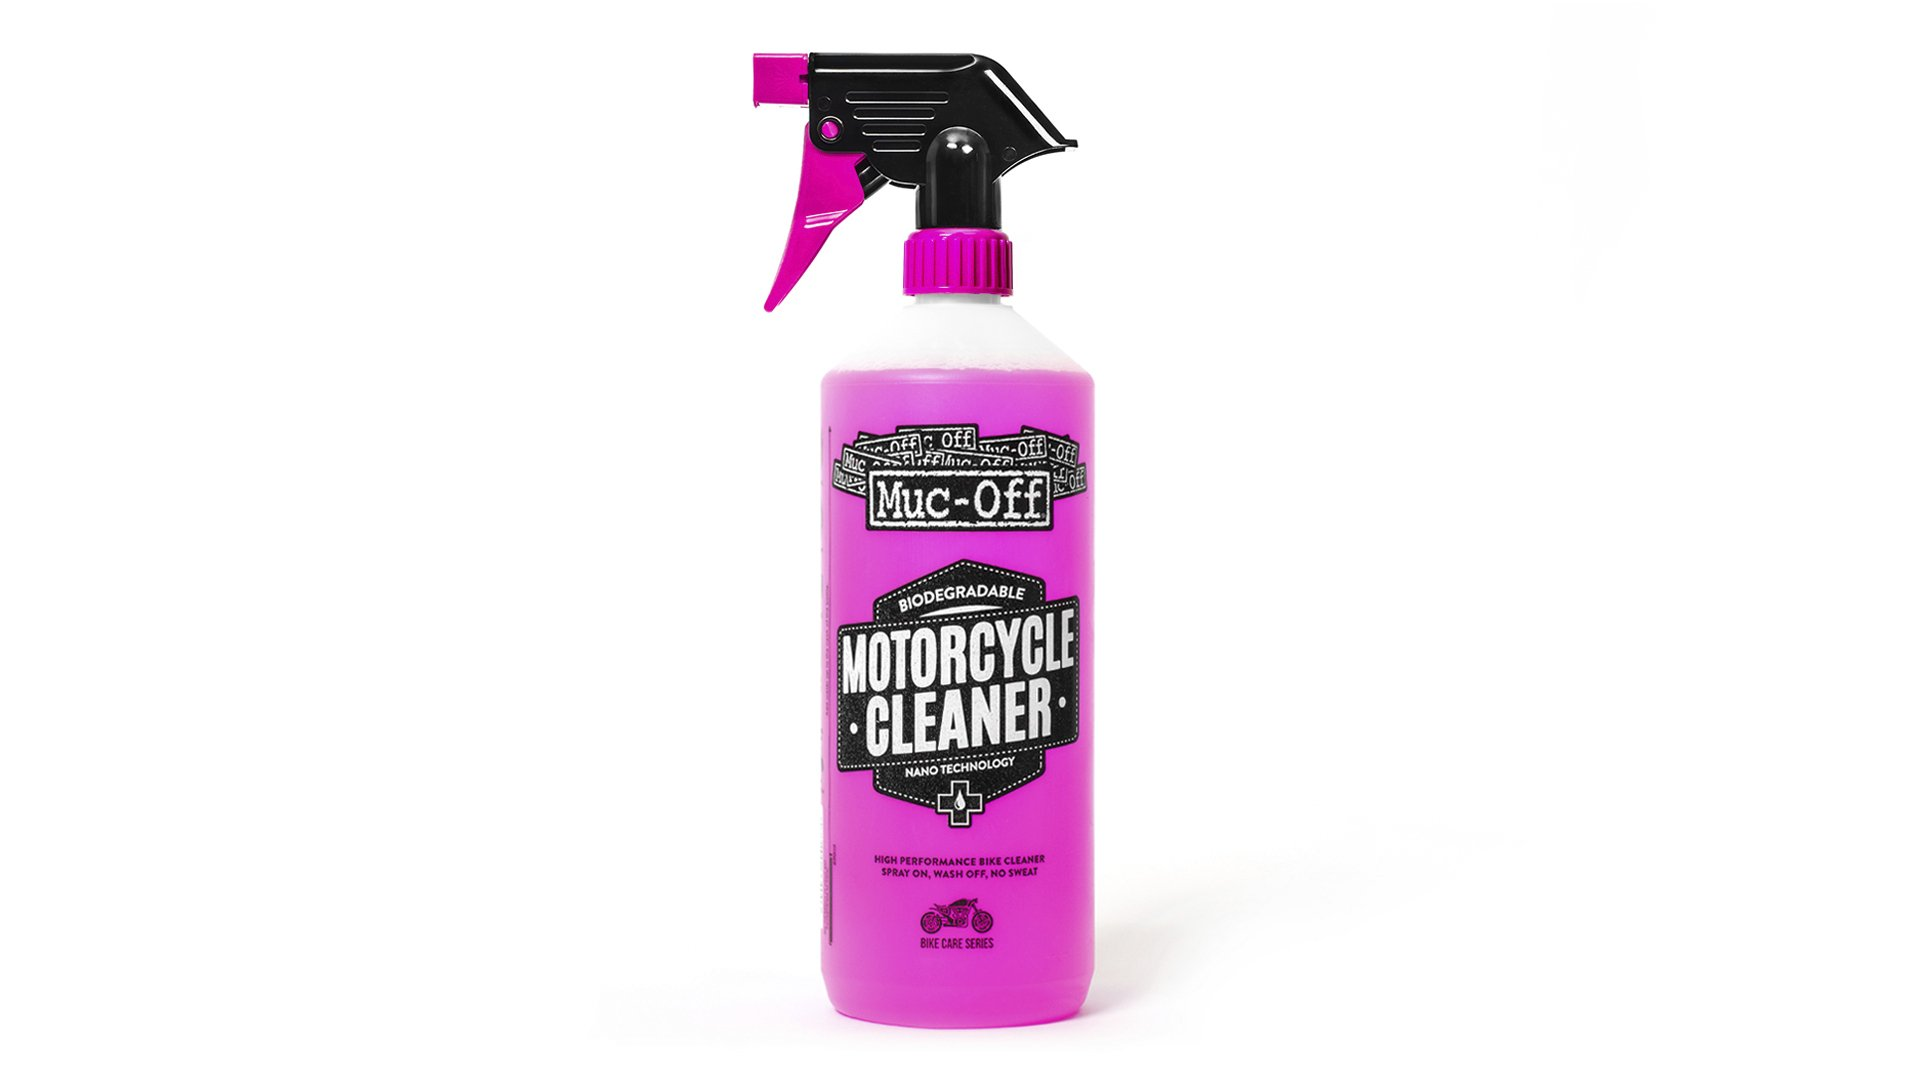 Muc Off 664US Pink 1 Liter Motorcycle Cleaner